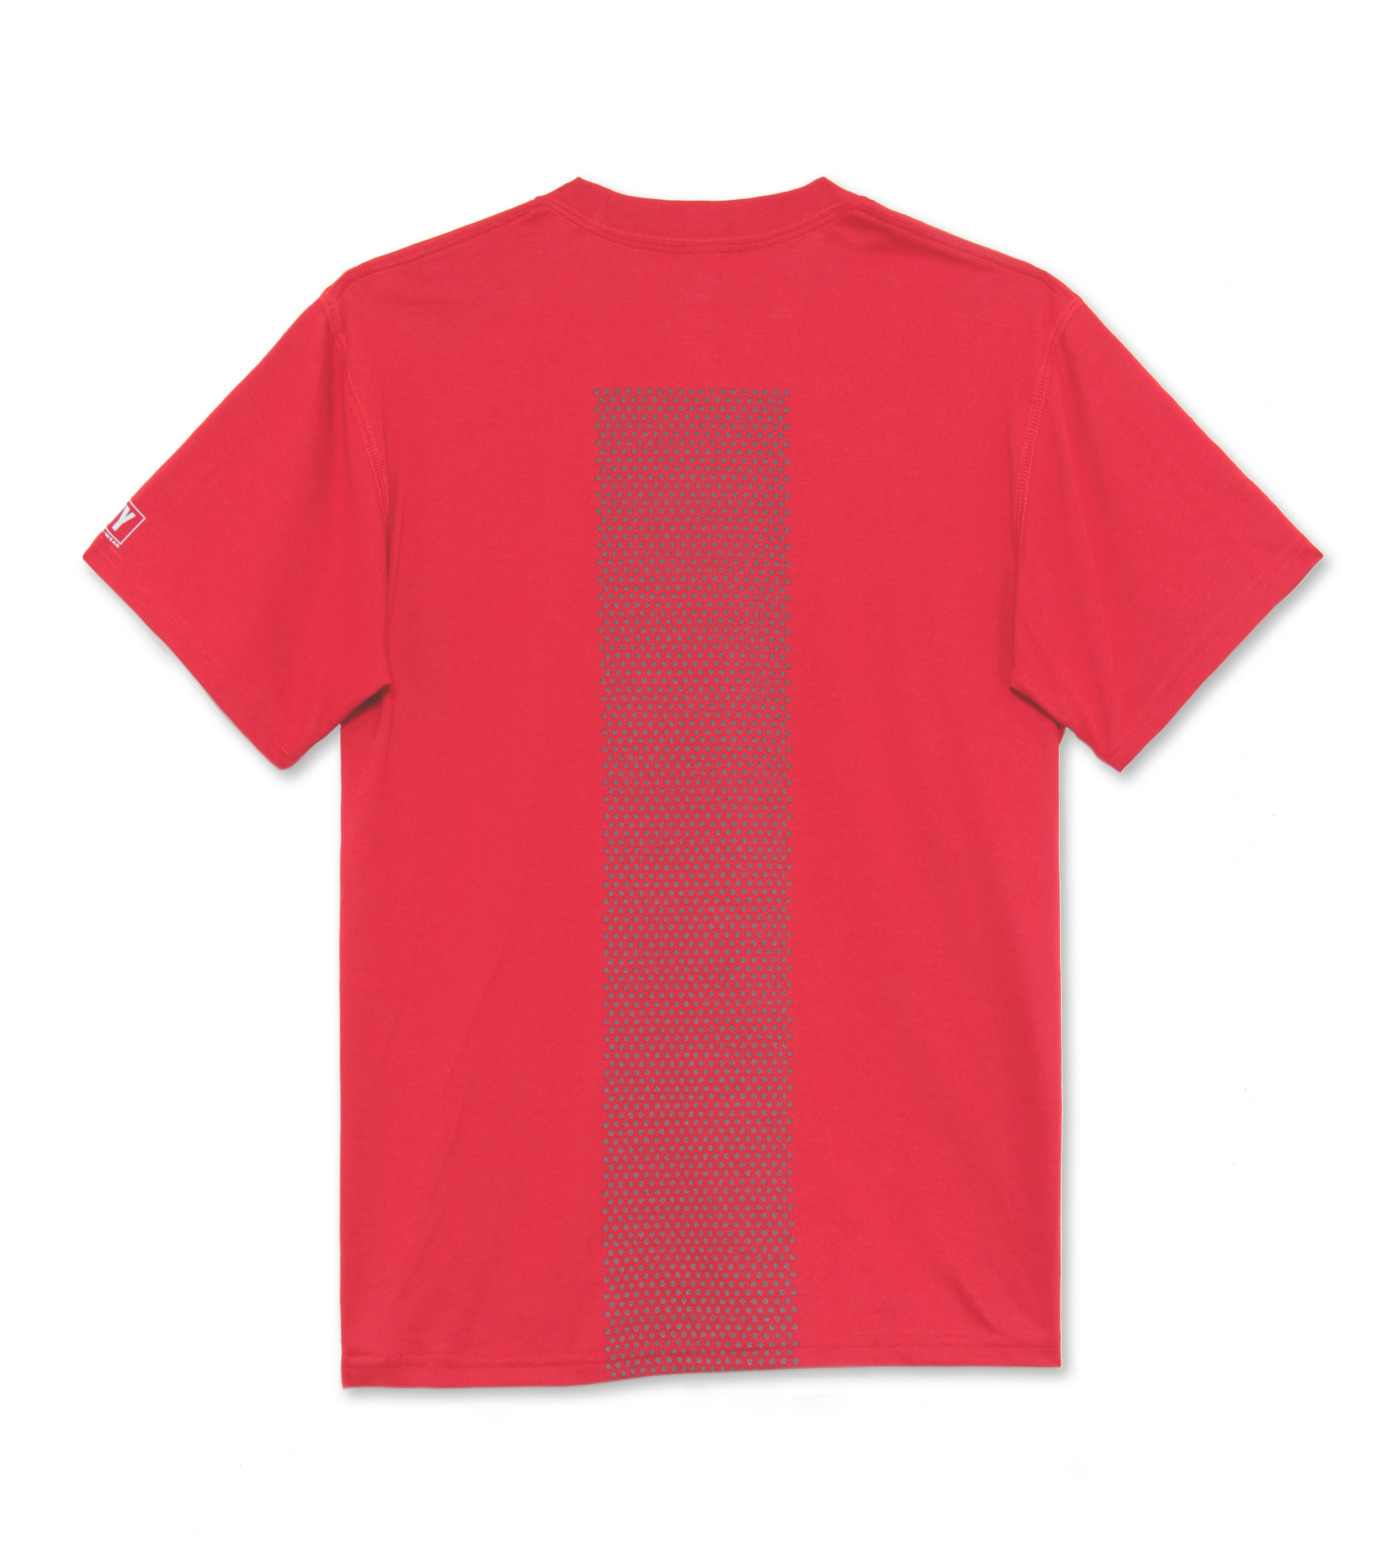 ICNY(アイ・シー・エヌ・ワイ)のRun Over Tee-RED(T-SHIRTS/T-SHIRTS)-RNOT-62 拡大詳細画像2